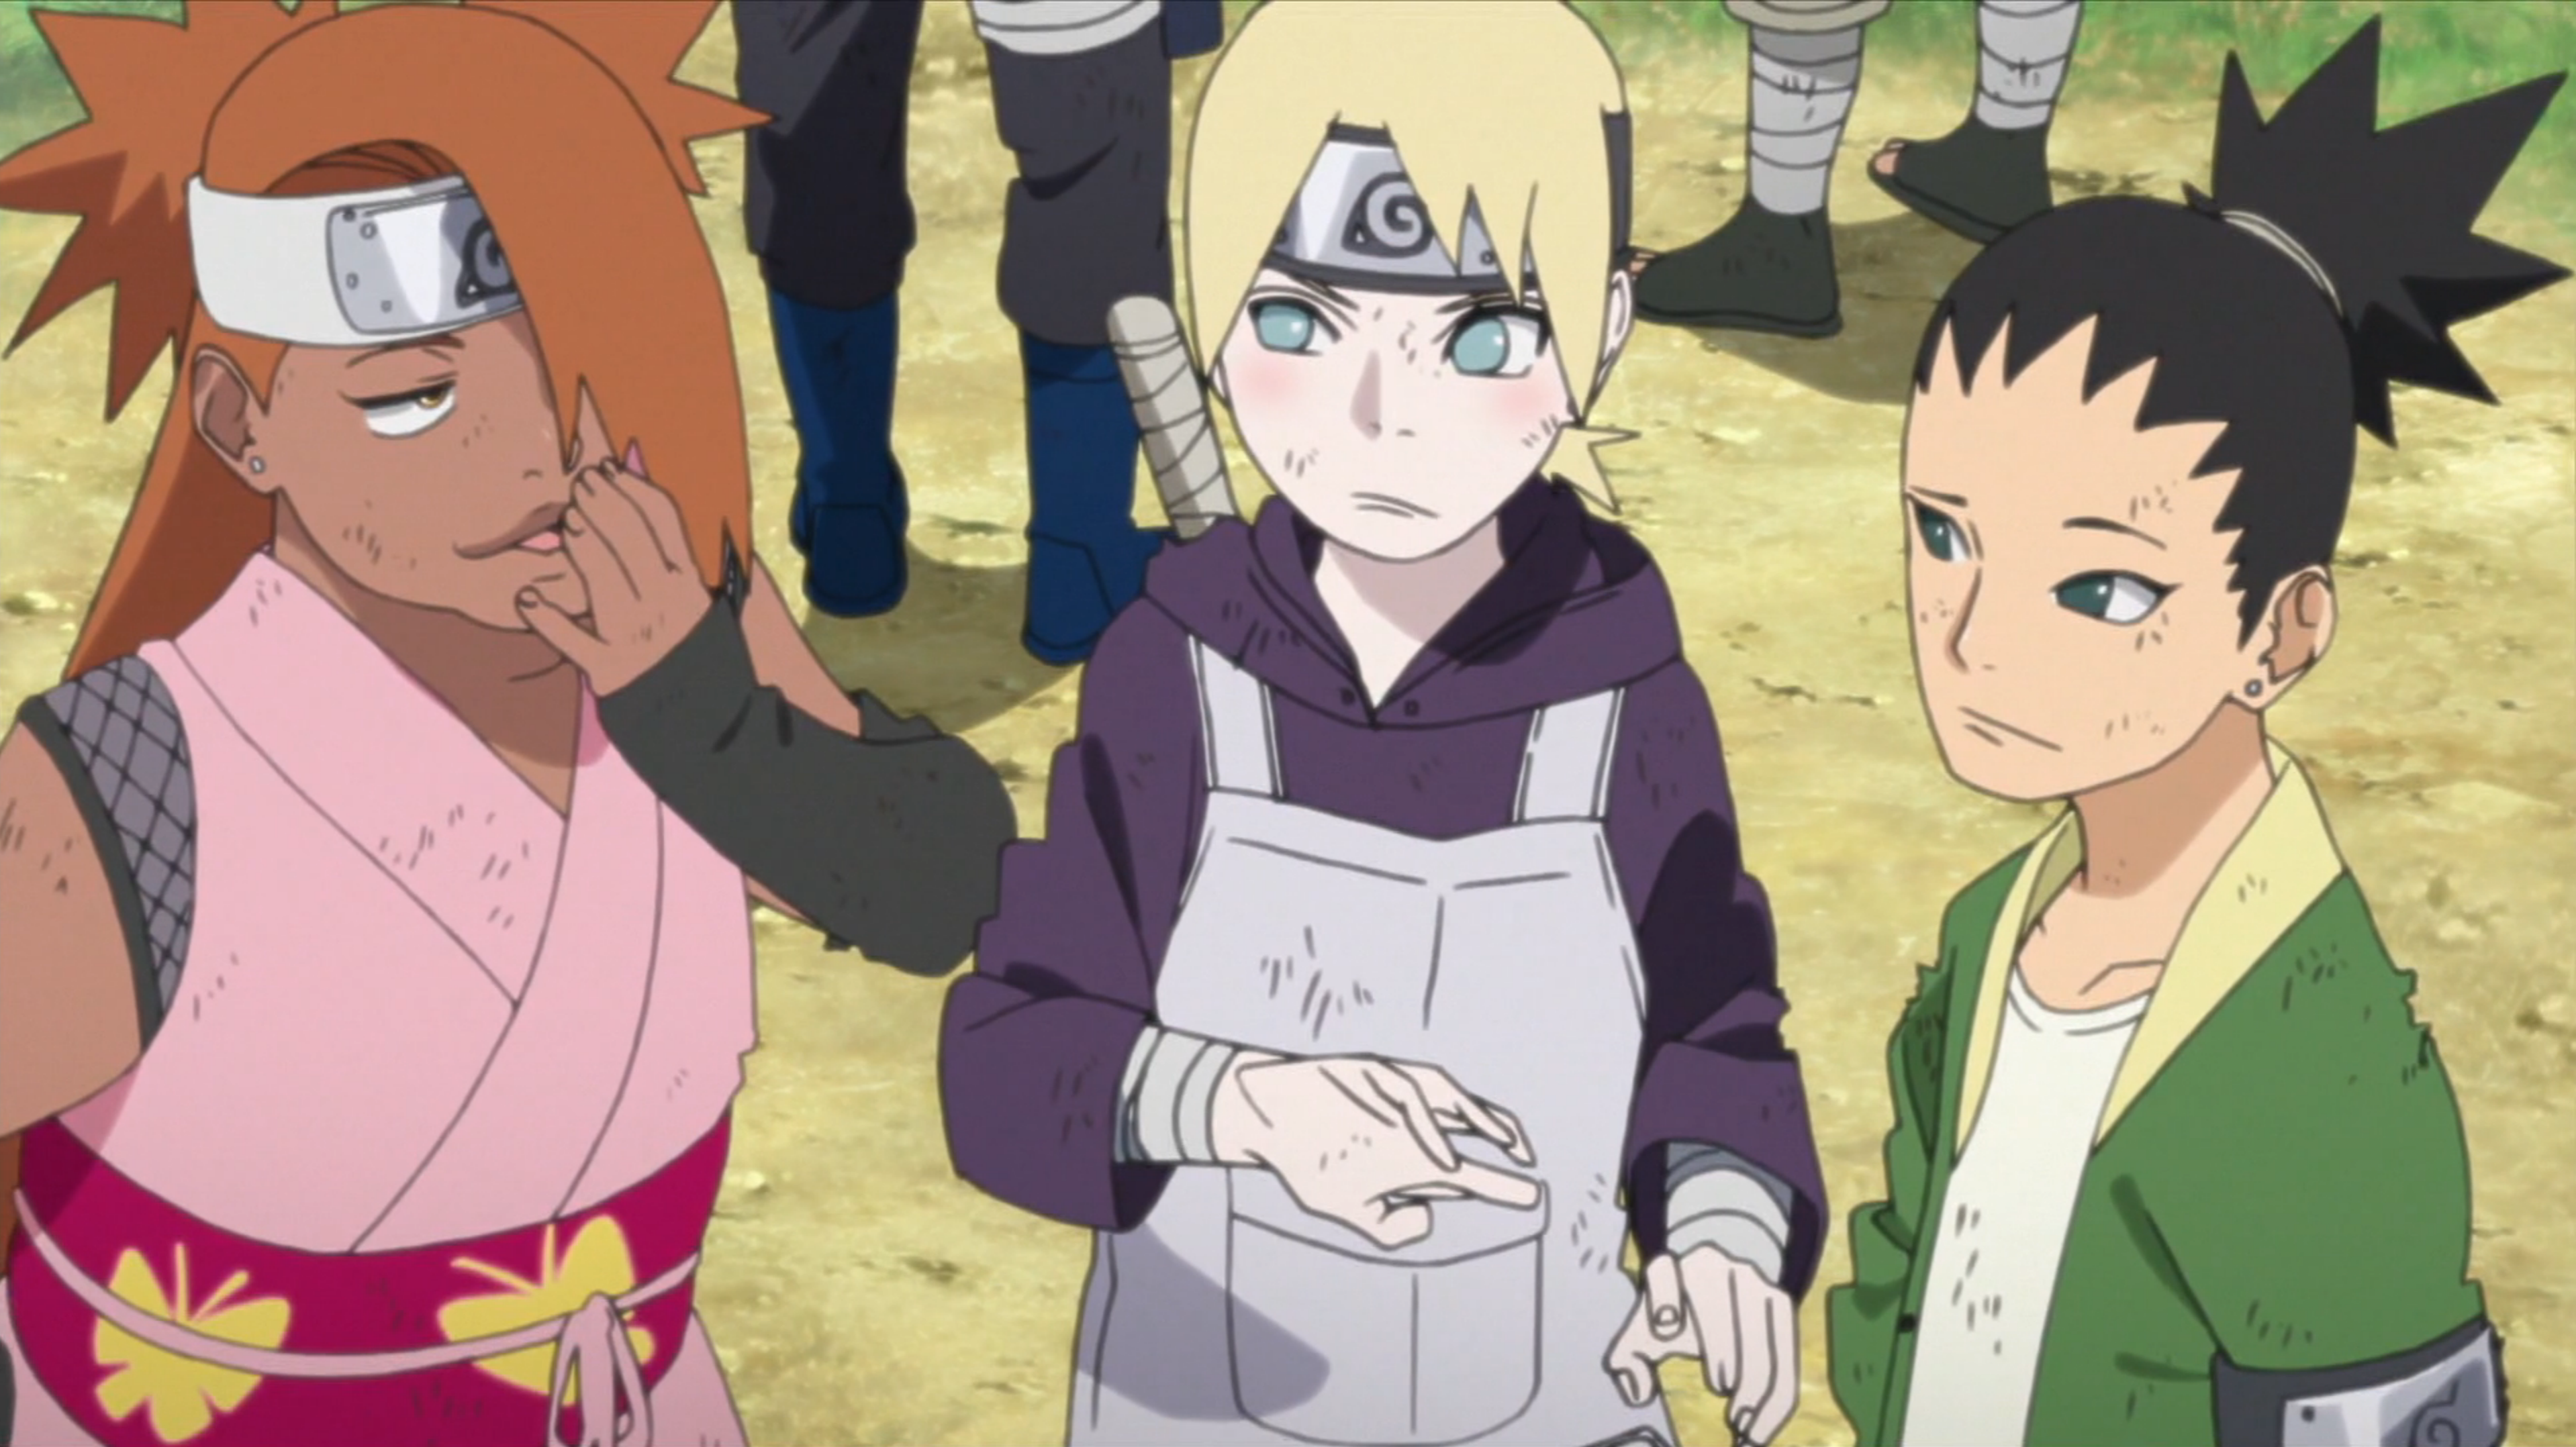 Shikadai Nara | Narutopedia | FANDOM powered by Wikia